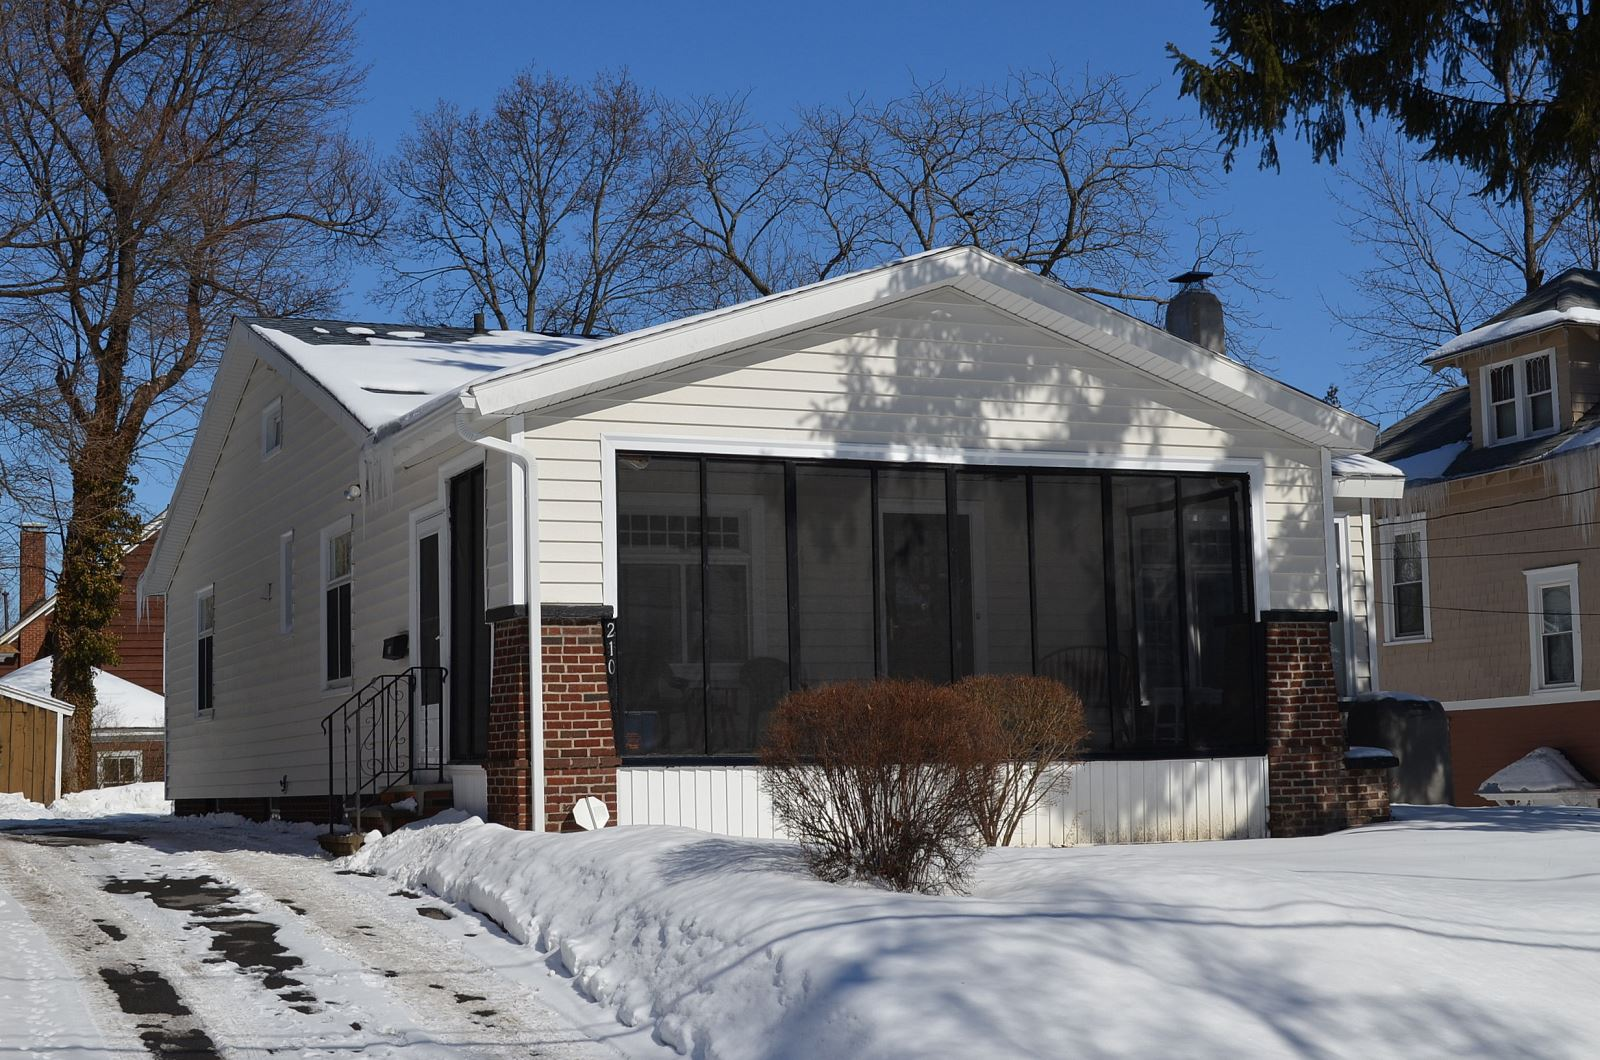 strathmore syracuse homes for sale - photo#9